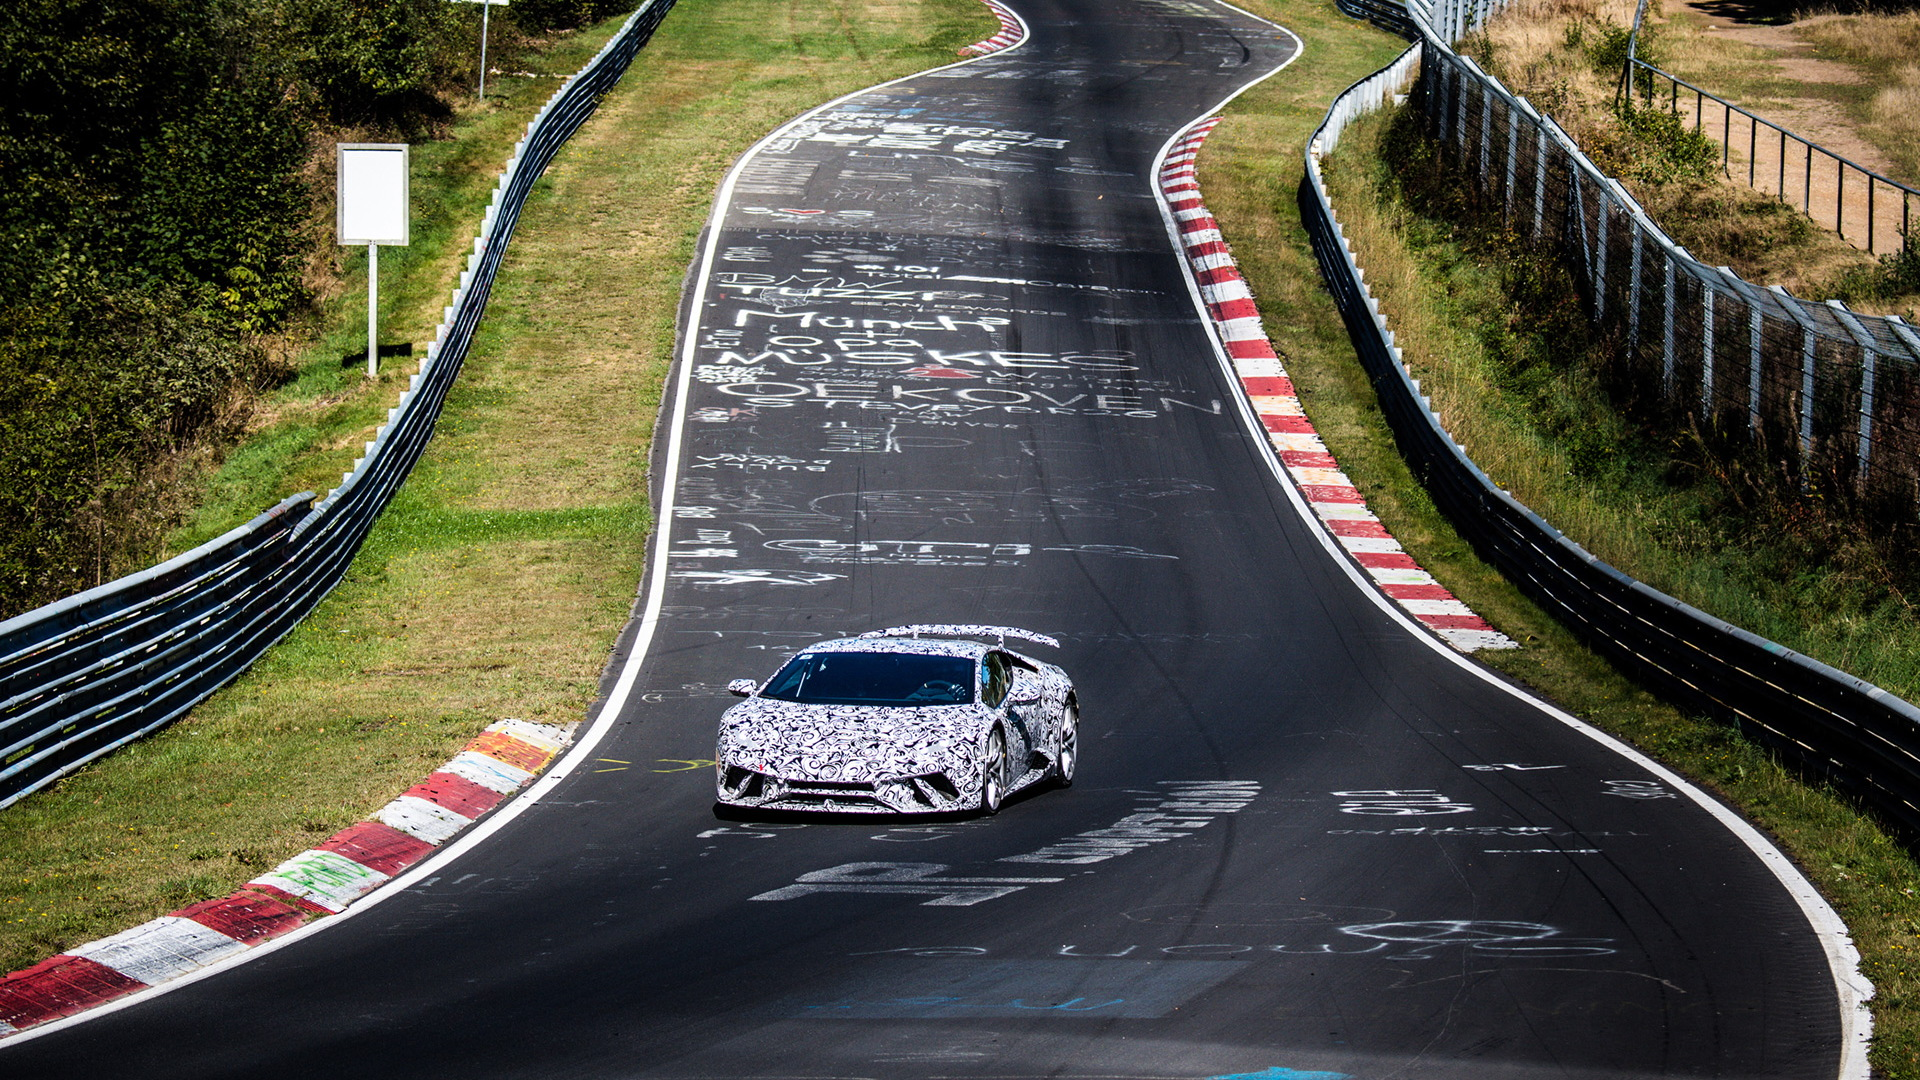 Lamborghini Huracán Performante at the Nürburgring